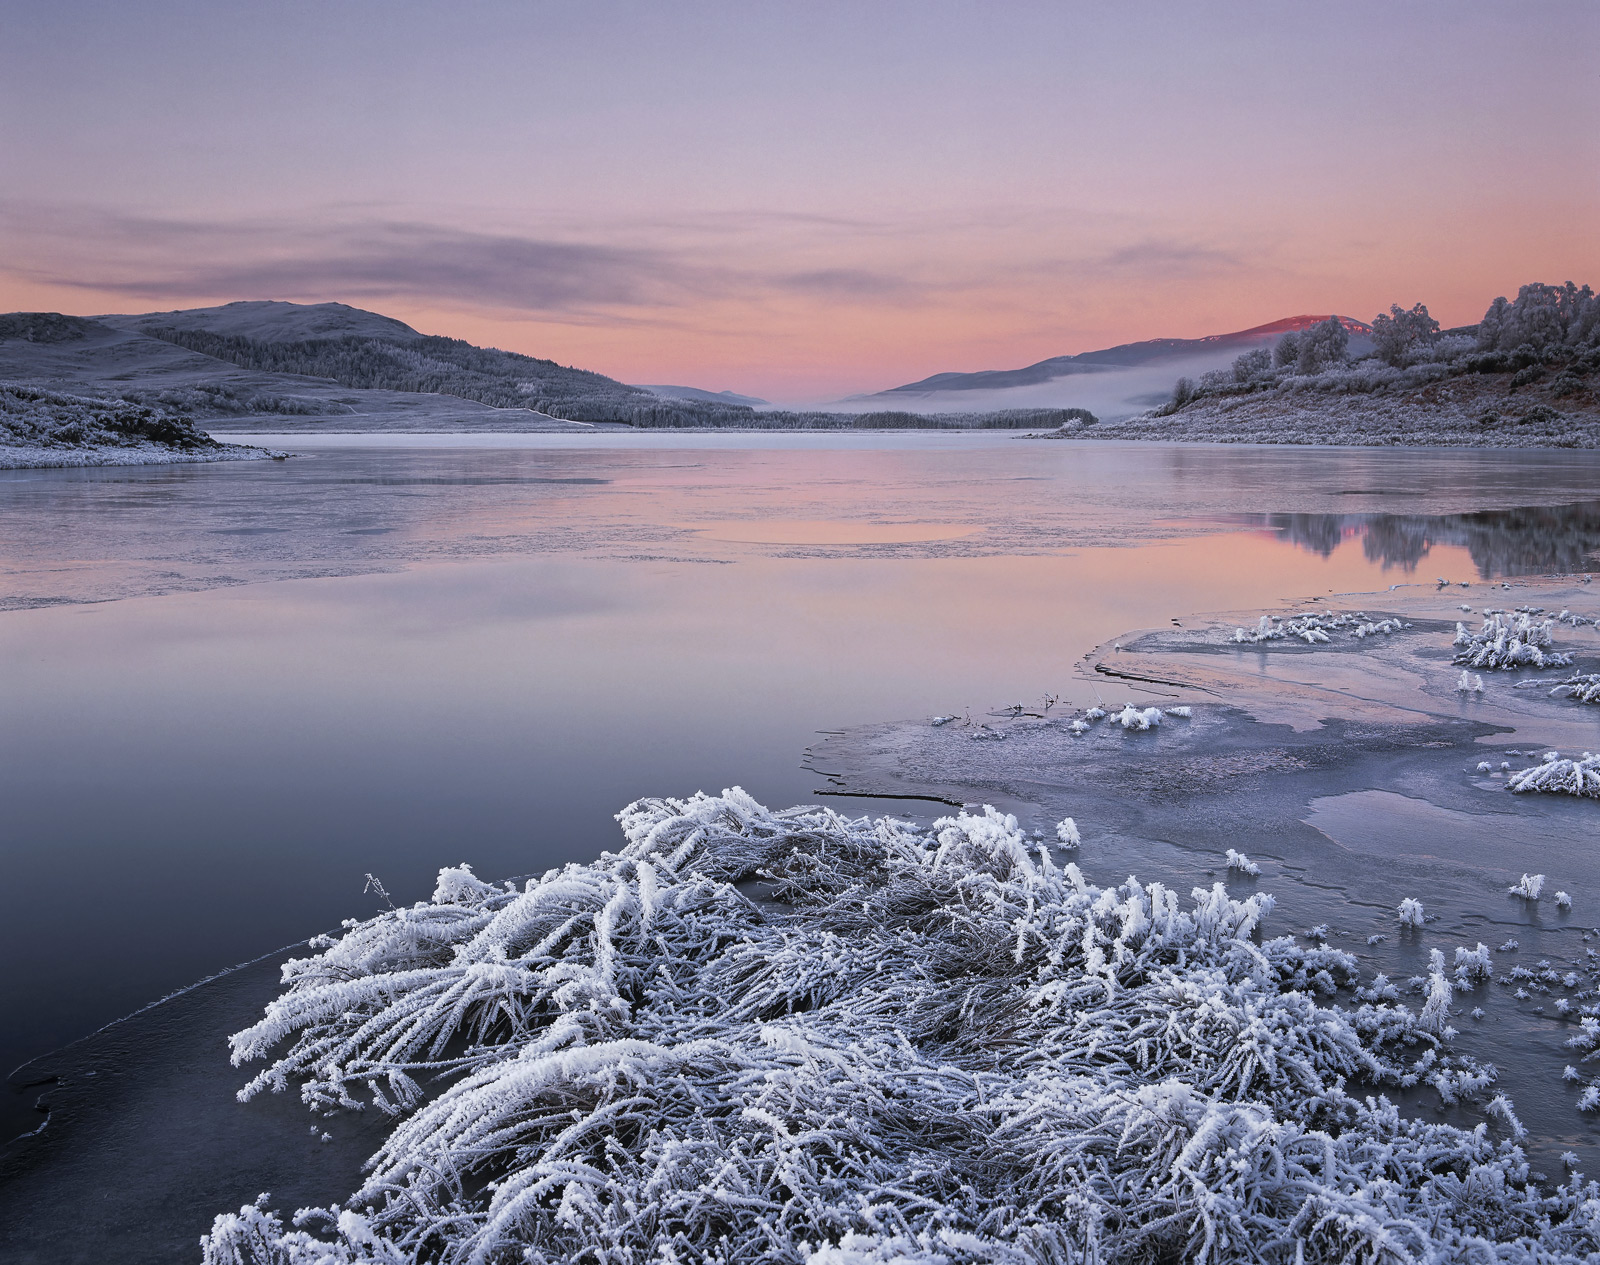 A sunrise across partially frozen Loch Achanalt looking toward Achnasheen and the pinkening of earth shadow with an accompanying...